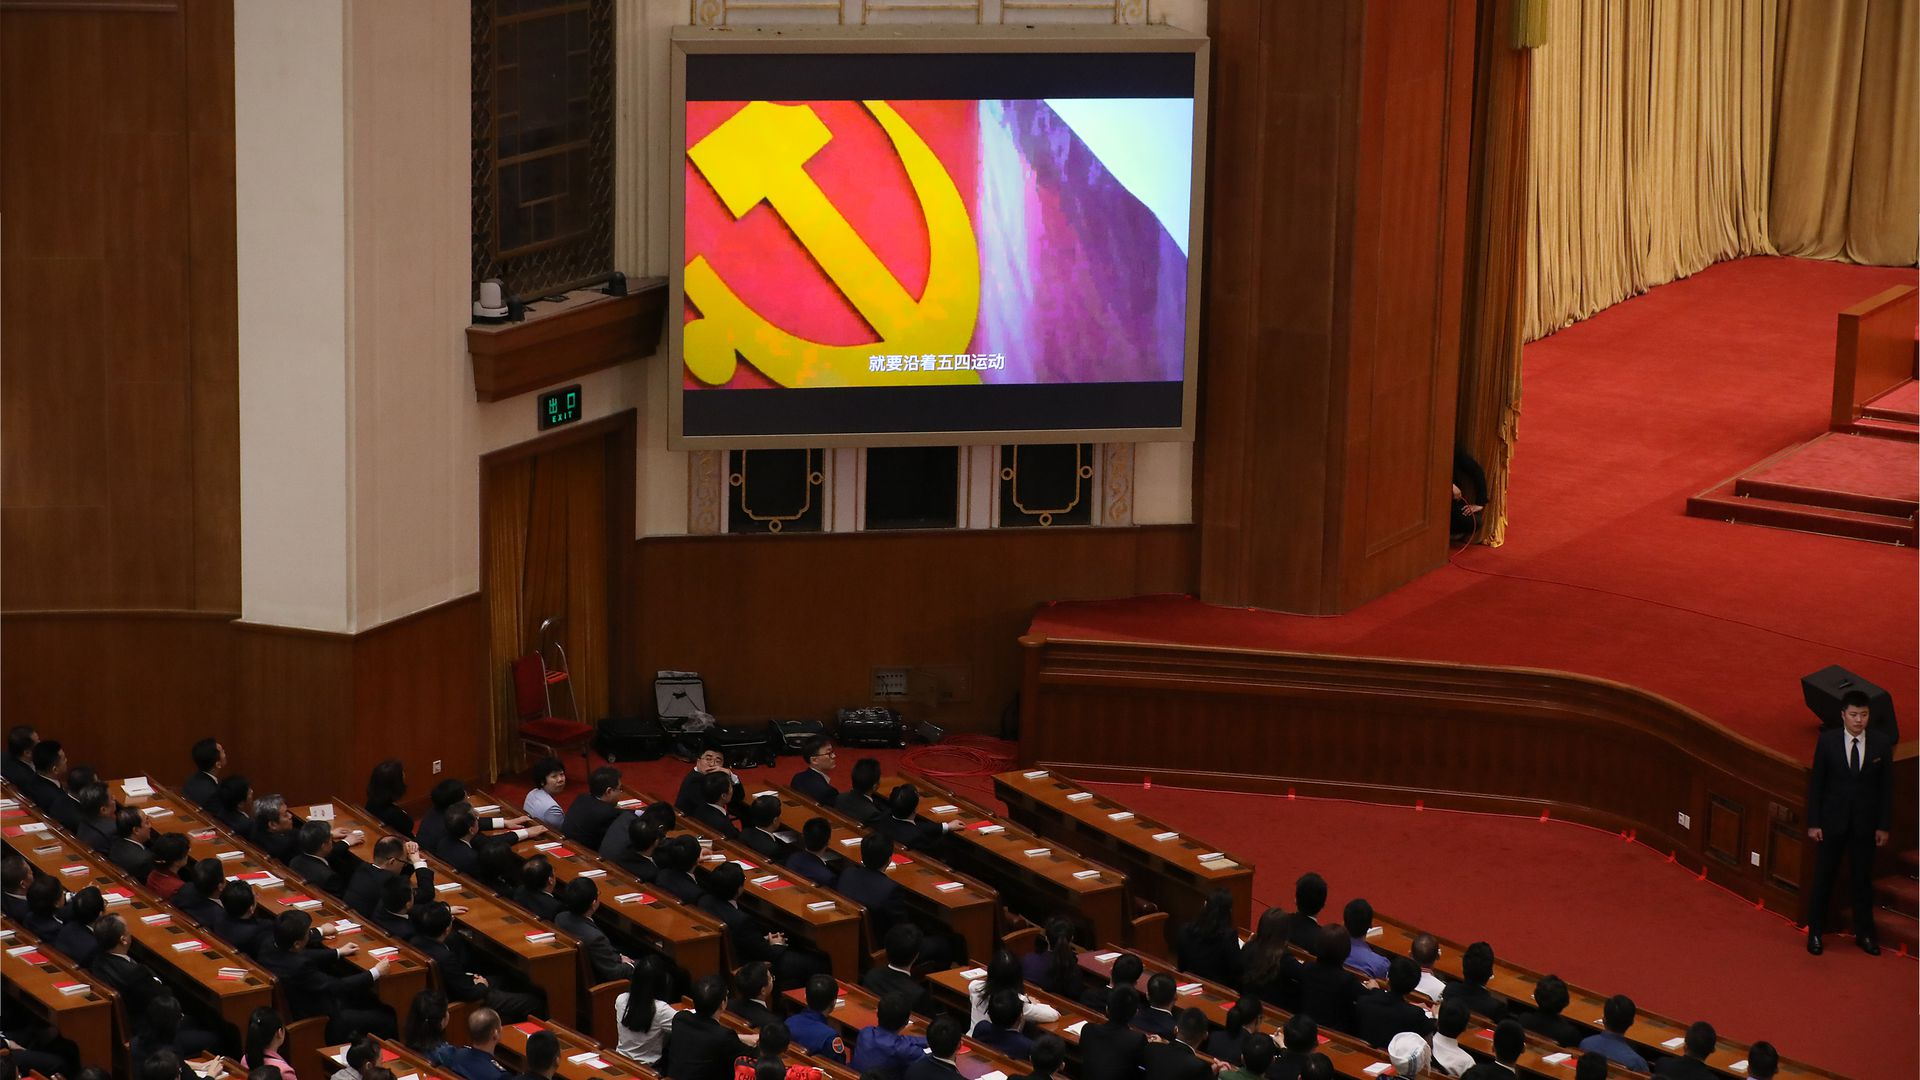 An audience watches a short film about the May 4th Movement at The Great Hall Of The People on April 30 in Beijing.